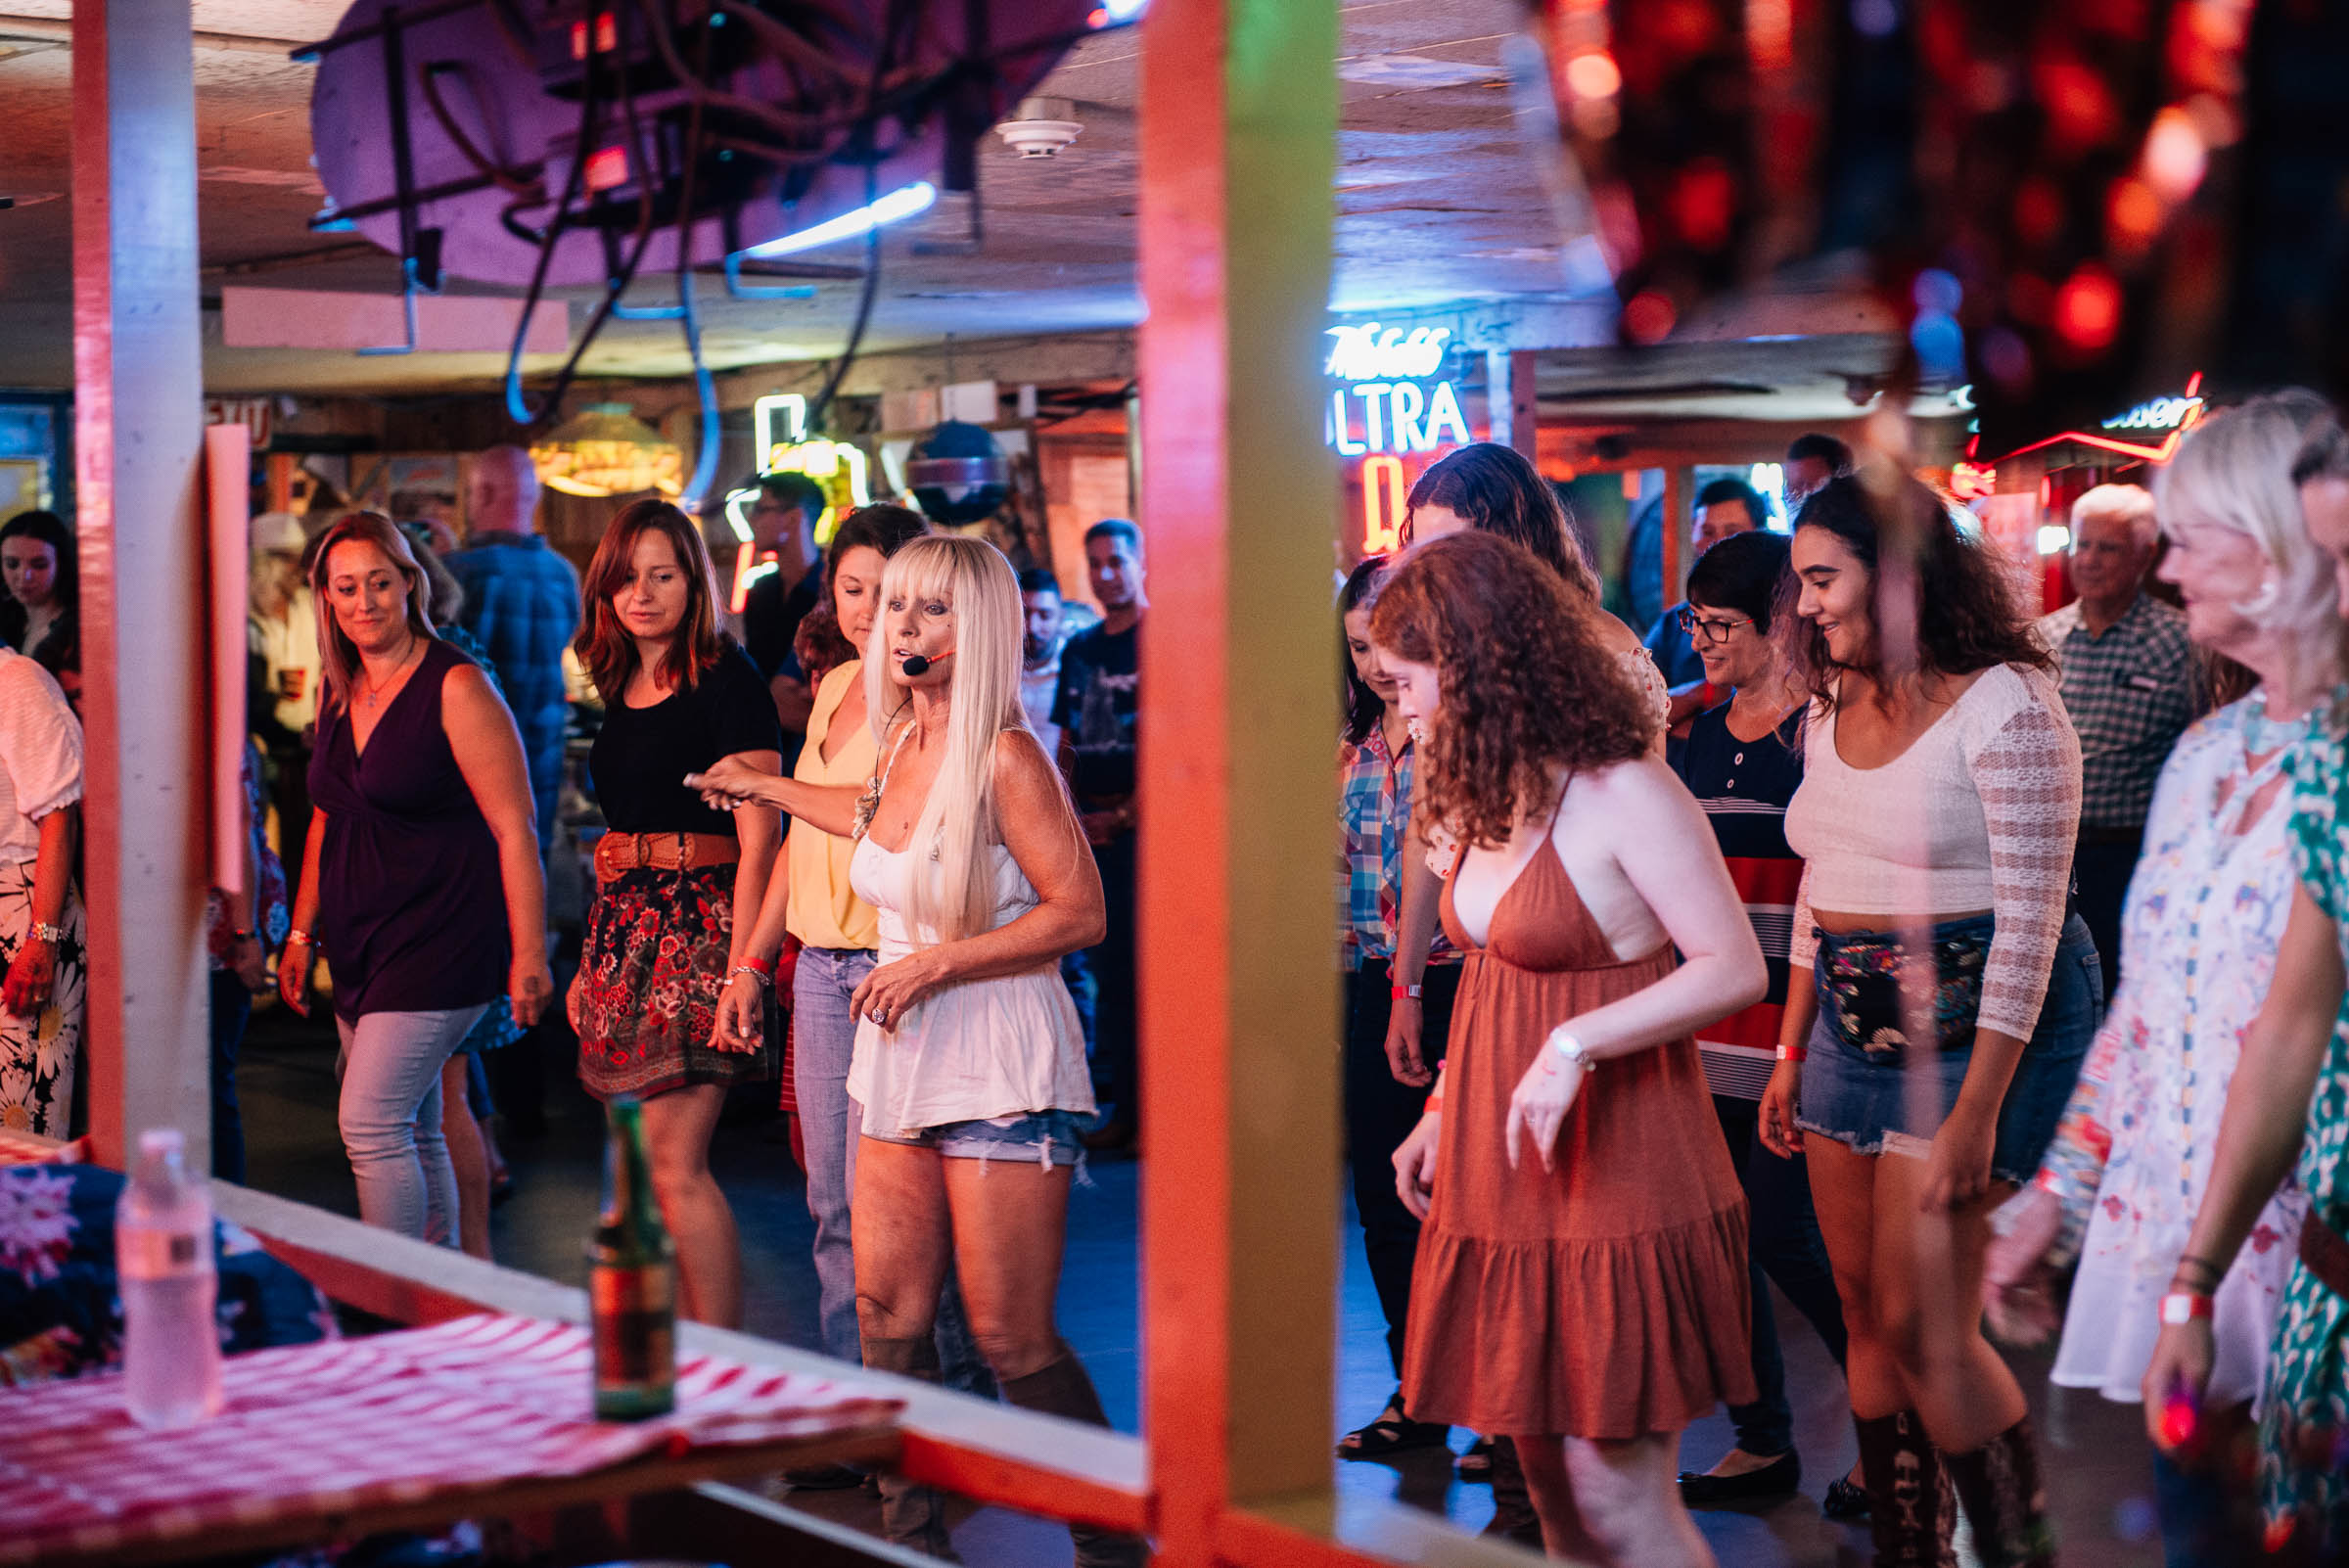 Line-dancing-class-at-The-Broken-Spoke-honky-tonk-bar